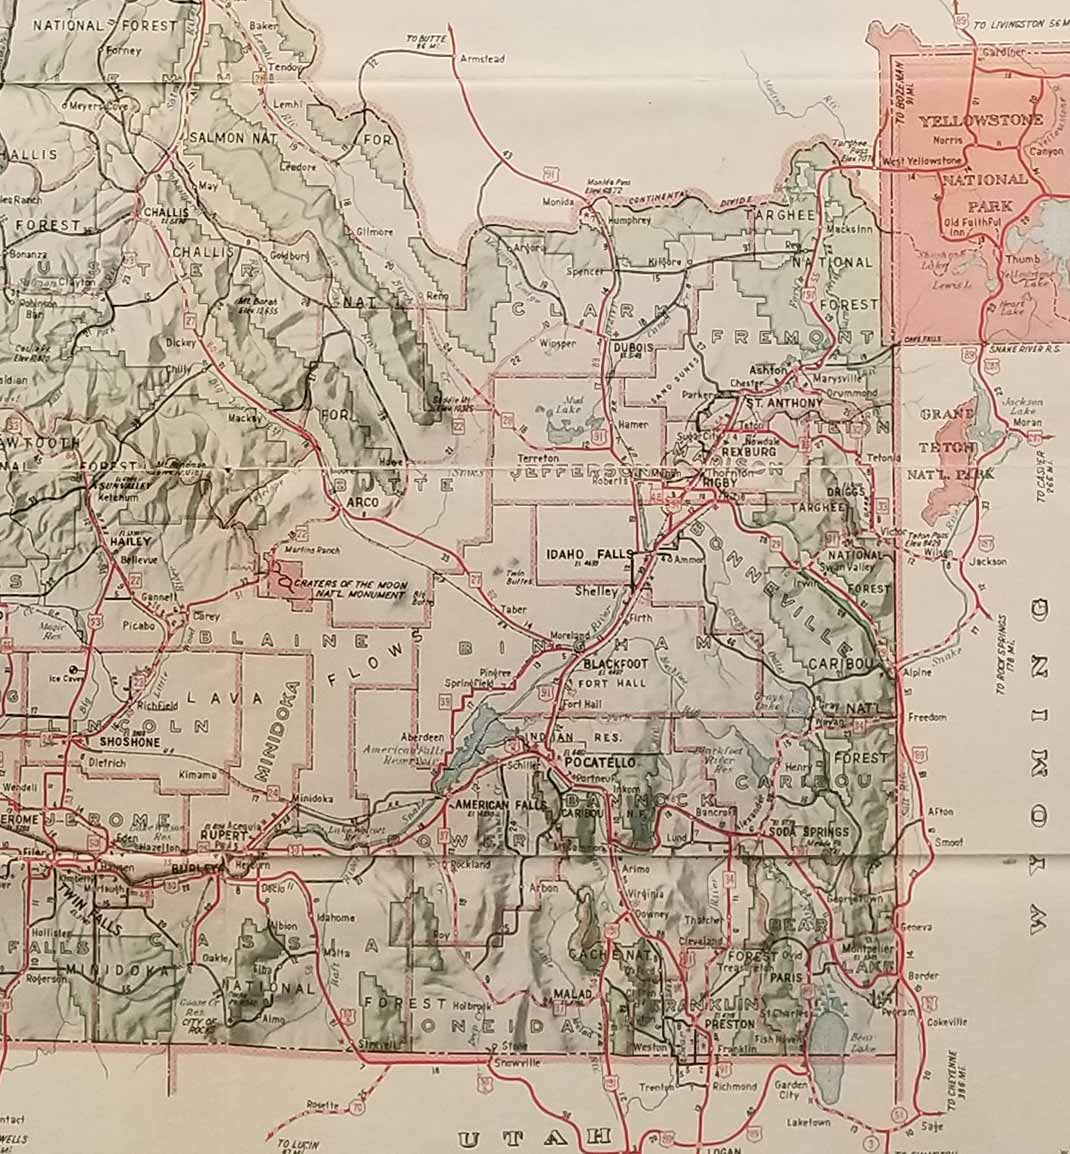 Bureau of Highways Map of the State of Idaho Showing State Highways on idaho road map atlas, idaho and wyoming map with cities, idaho us highway 12, idaho us map with red, idaho terrain maps, detailed idaho road map, western idaho road map, idaho map with miles, salmon river idaho map, tcu road map, idaho road map back, northern iowa road map, idaho highway map, idaho wyoming road map, central washington road map, idaho craters of the moon map, rv parks by state map, elk city idaho area map, idaho district 18b map, all of idaho cities map,